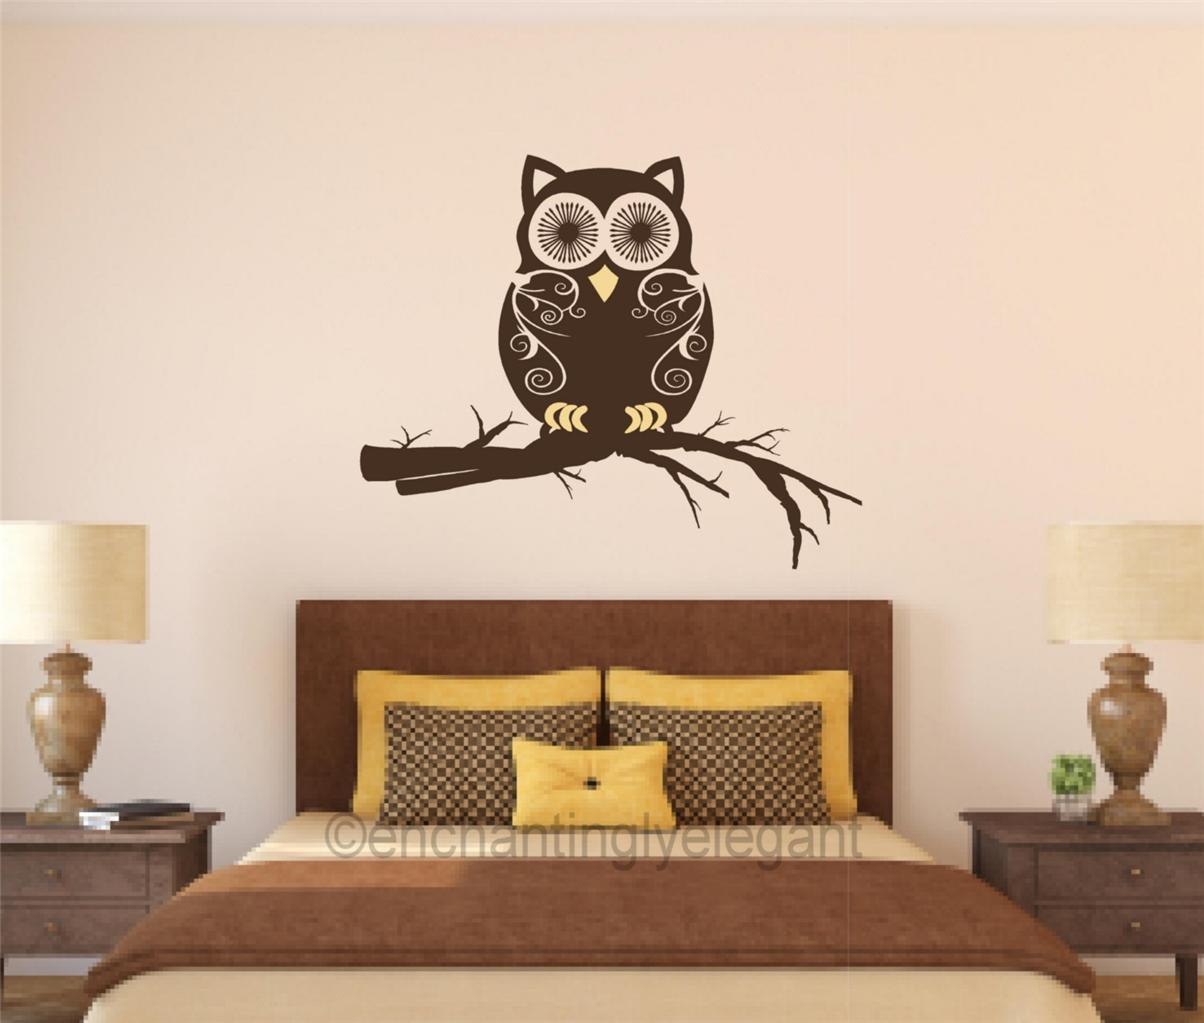 owl on branch vinyl decal wall sticker mural nursery teen room bathroom decor ebay. Black Bedroom Furniture Sets. Home Design Ideas